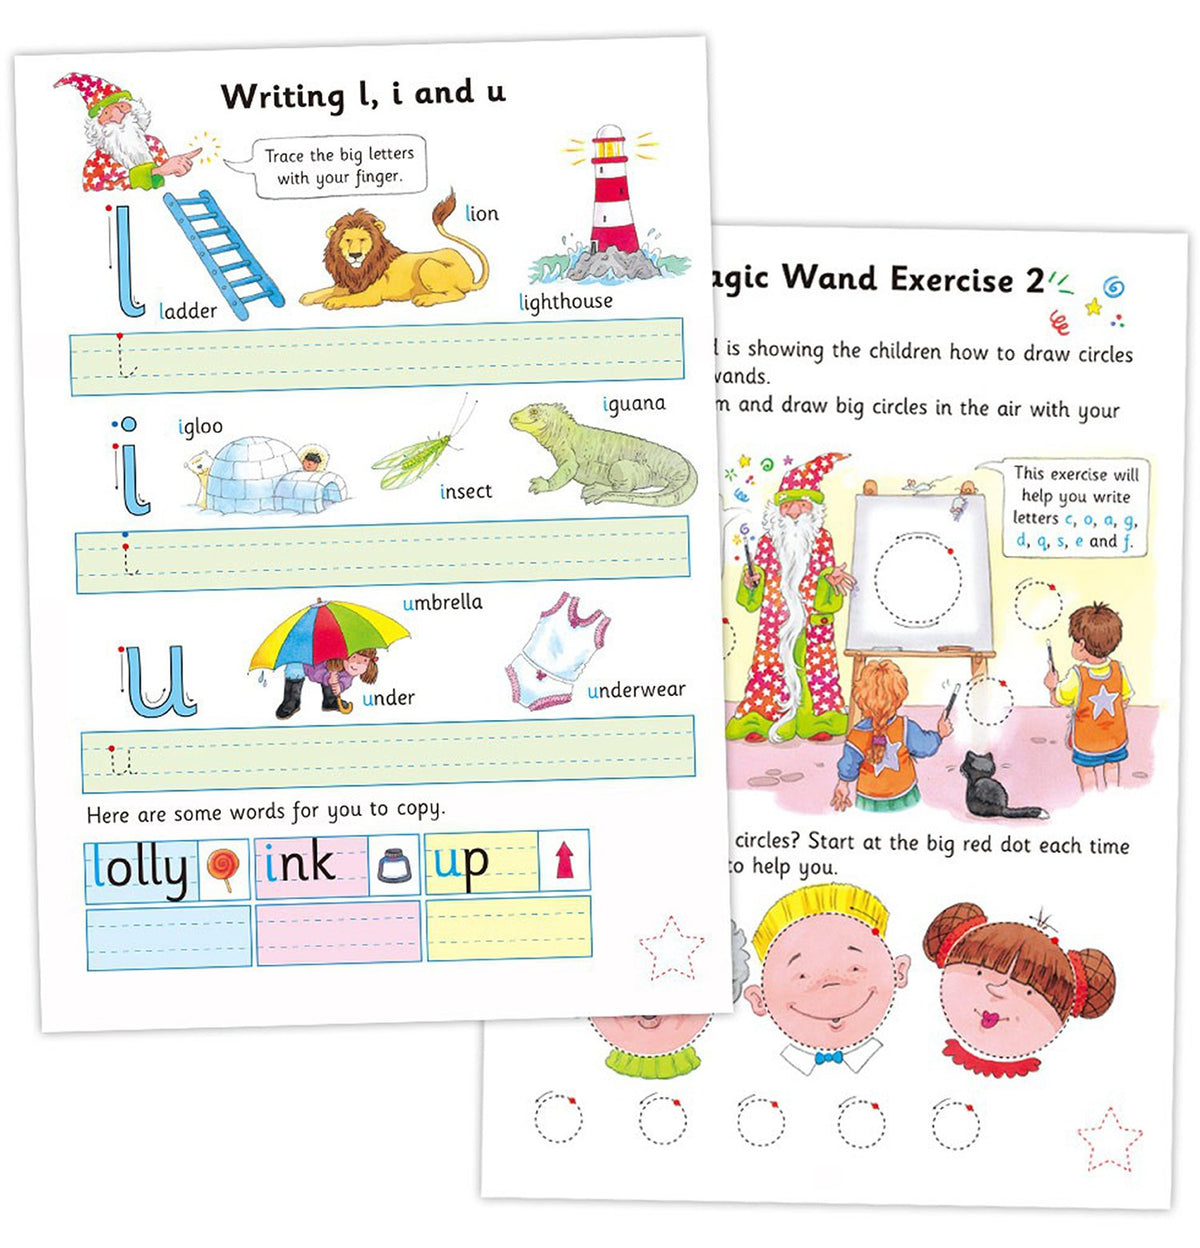 Home Learning Books - Play and Learn - Galt